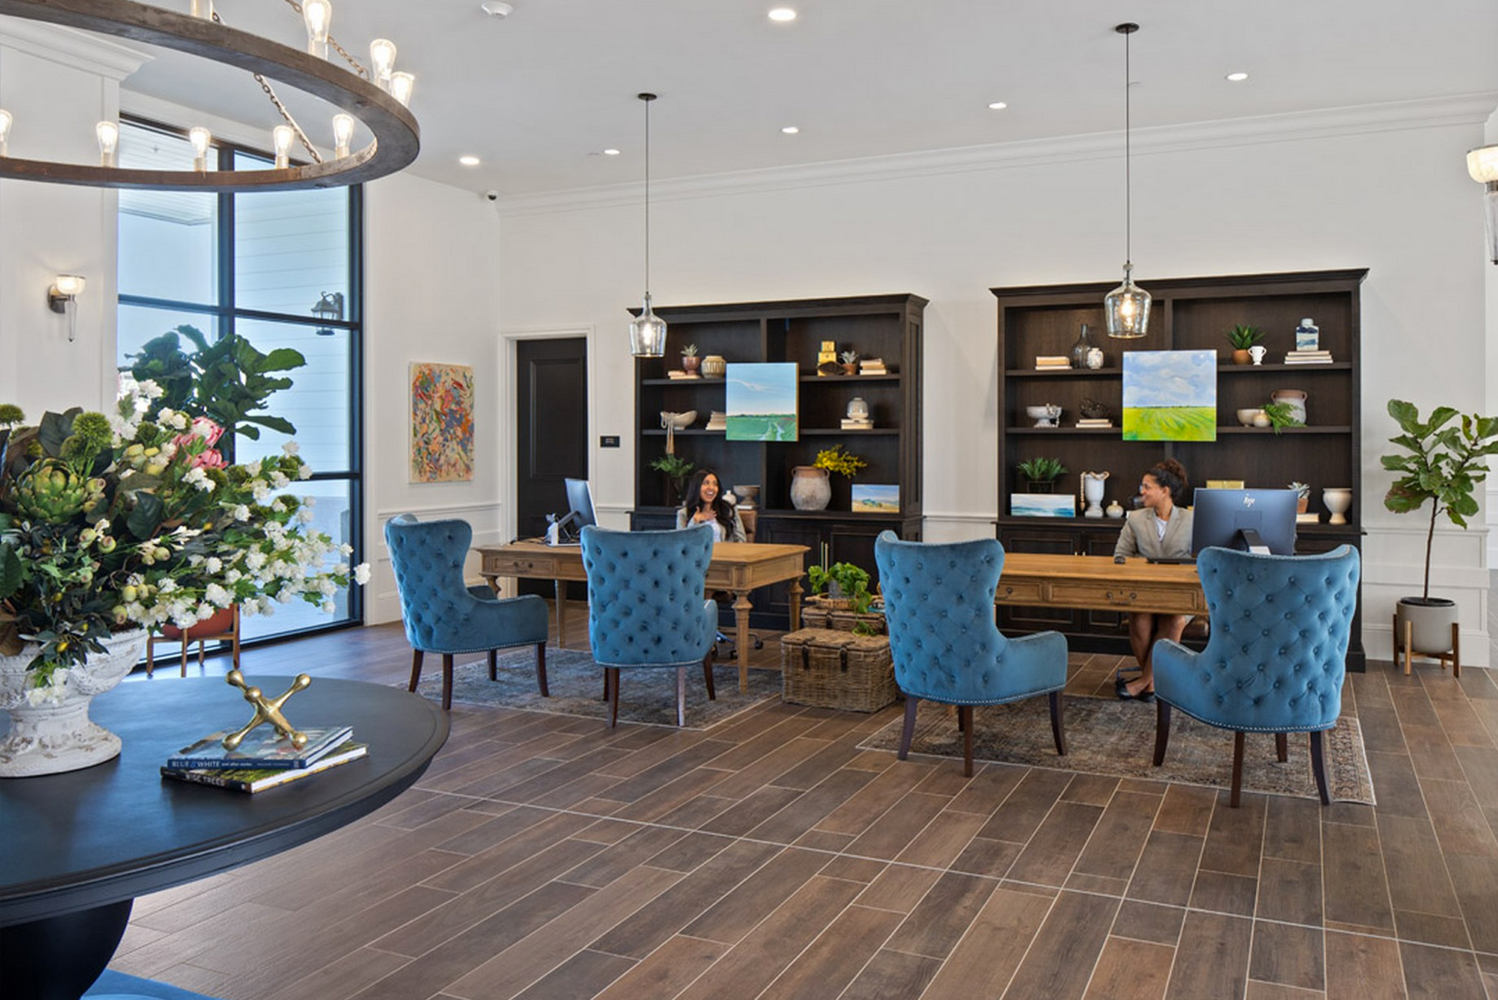 Hotel Winters opened as the first full-service luxury boutique hotel in Yolo County, California.